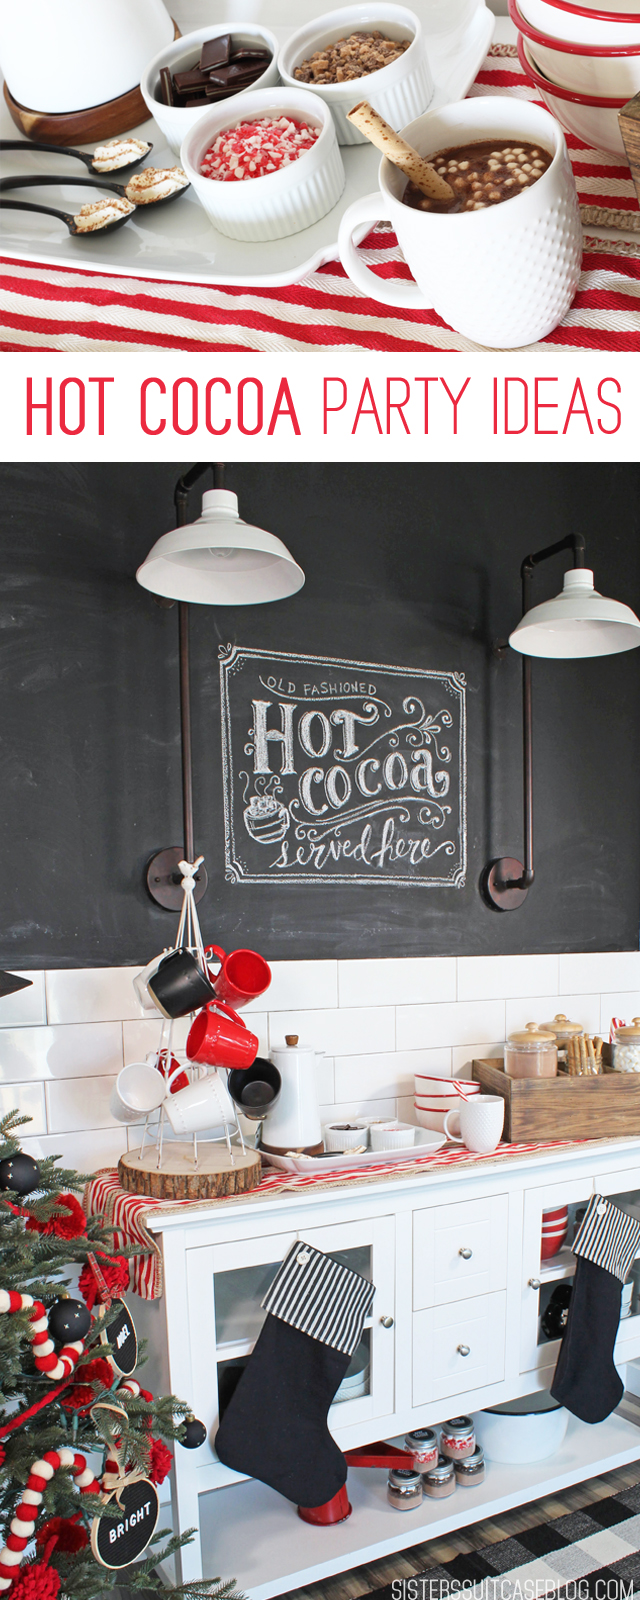 Hot Cocoa Party Ideas